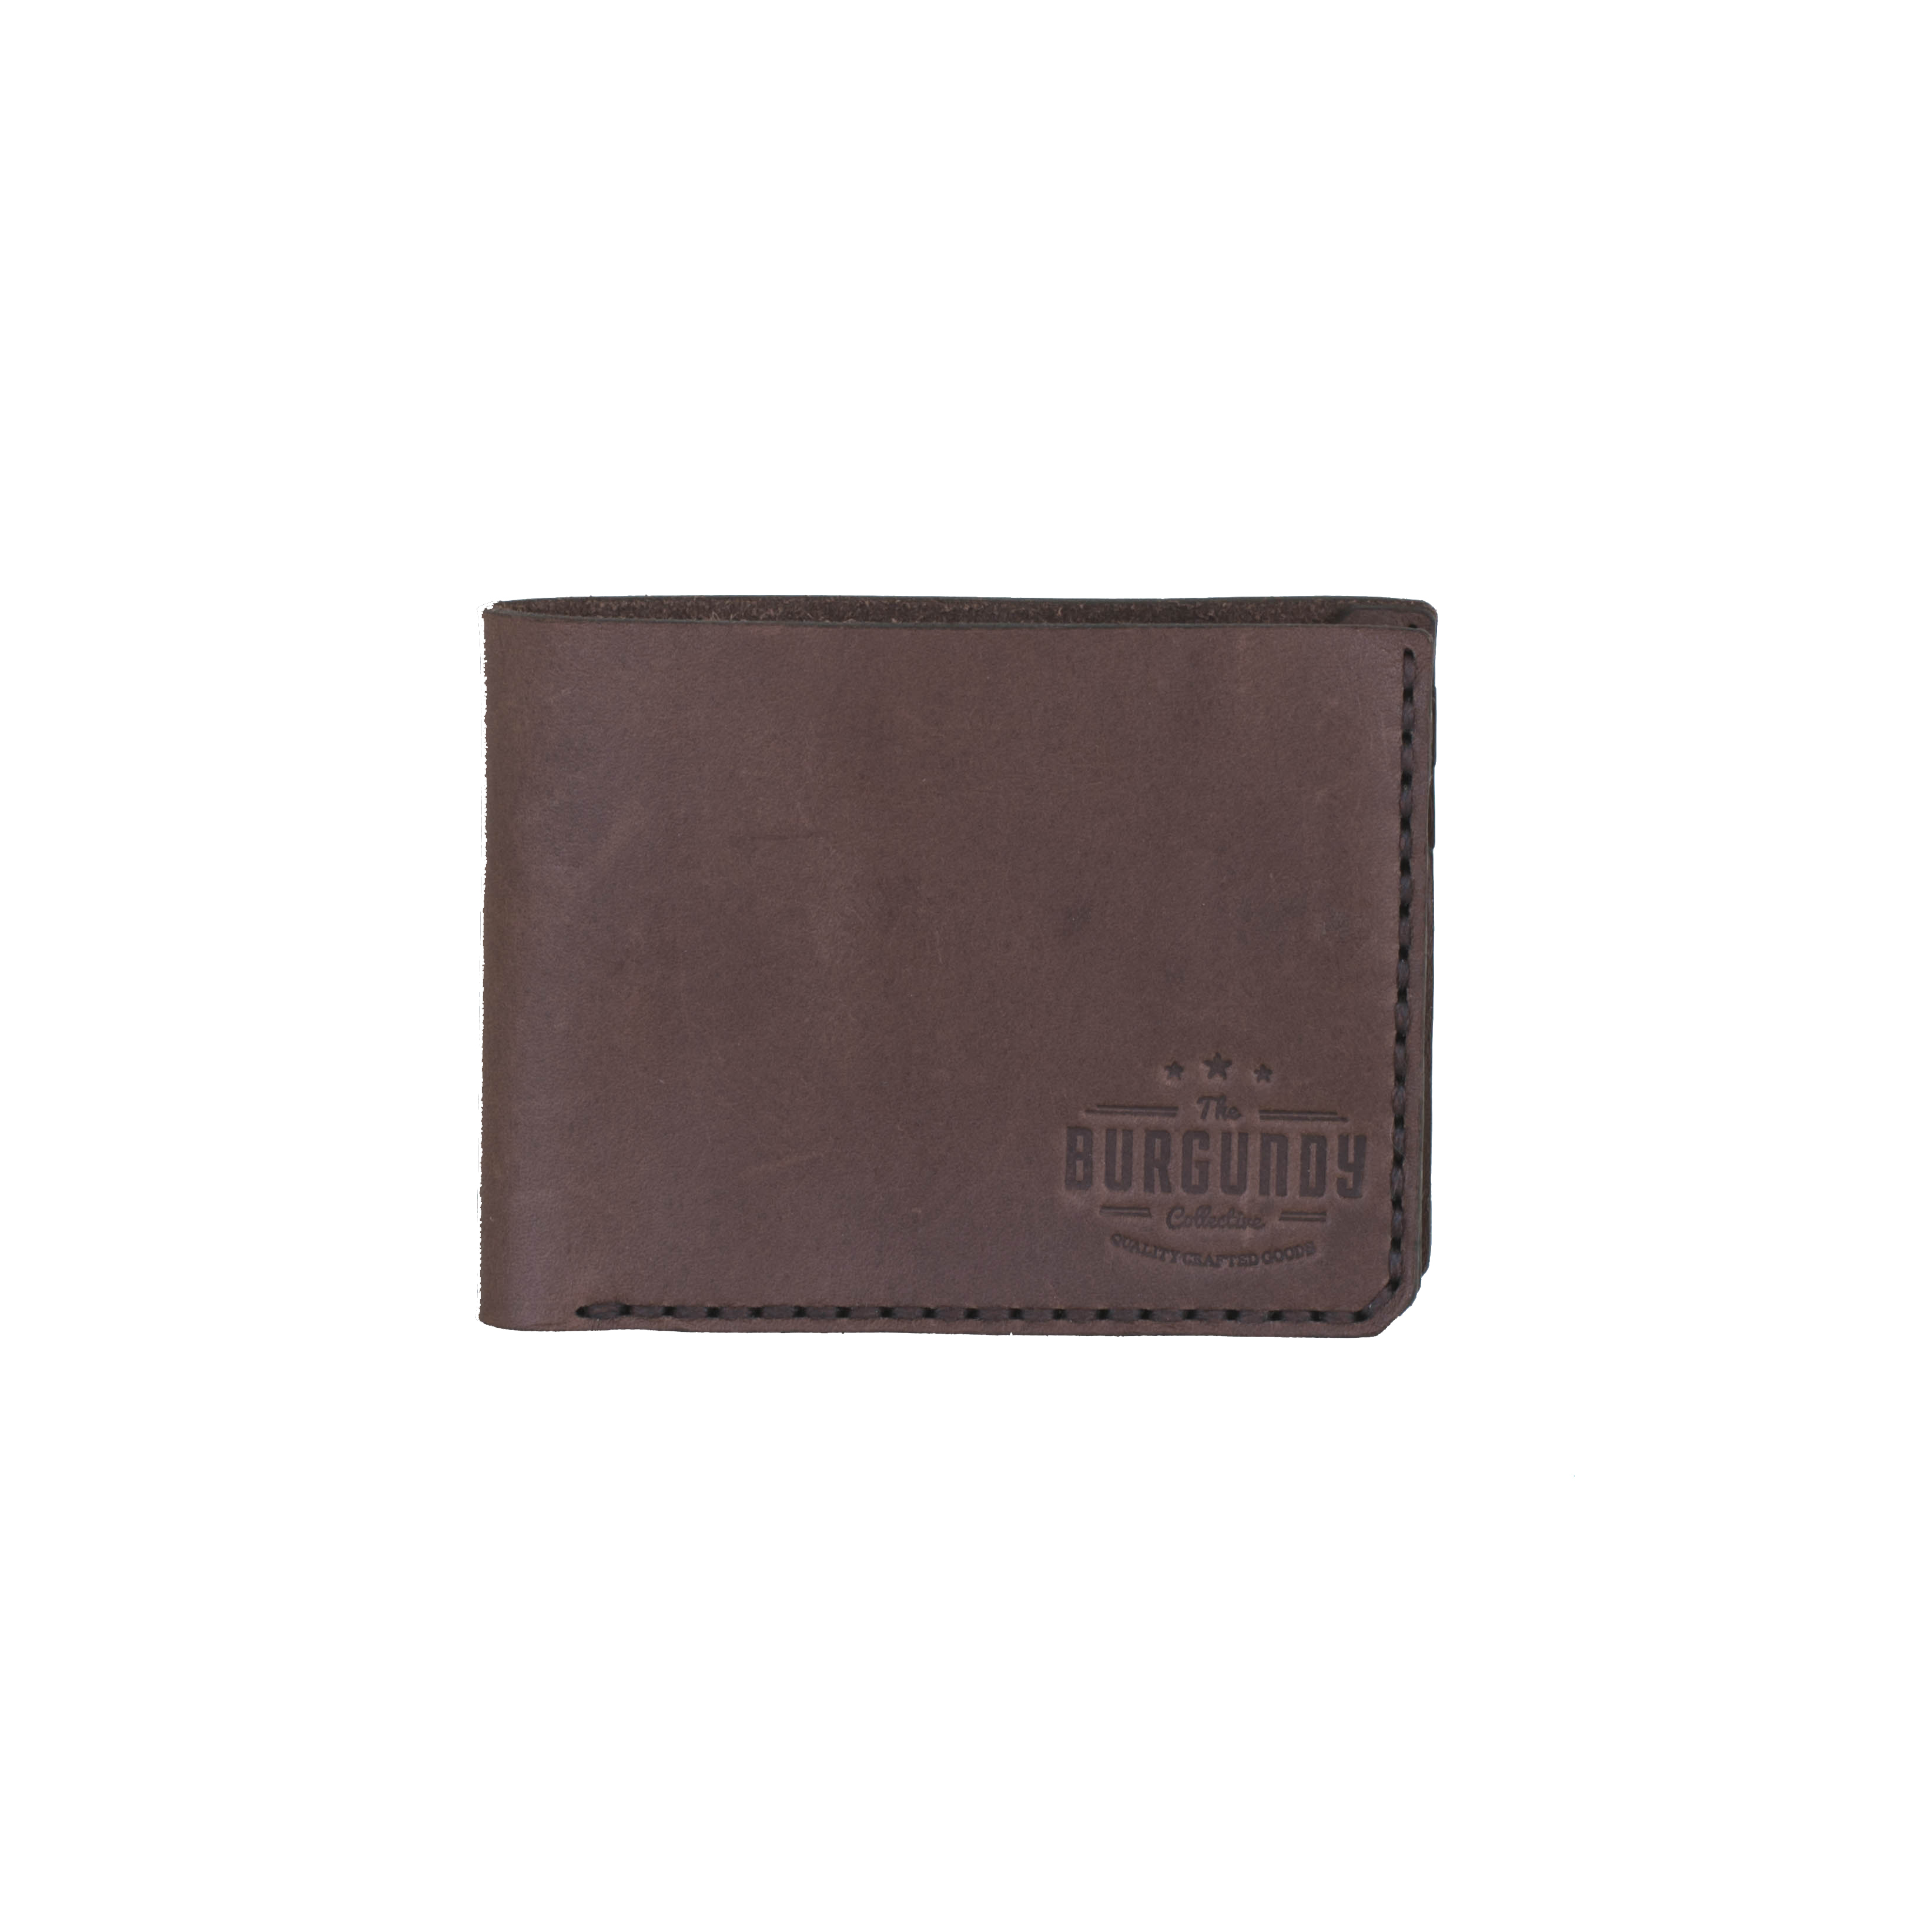 The Bi-fold wallet is your perfect small accessory, designed to fit cards and notes. This wallet looks and functions as a classic wallet should and comfortably fits in the front or back pocket. The Bifold is worn effortlessly and with style.    FEATURES:   Crafted from premium vegetable tanned leather 6 slots for cards 1 main compartment for cash and slips     DIMENSIONS:  H 8,5cm x W 10,5cm